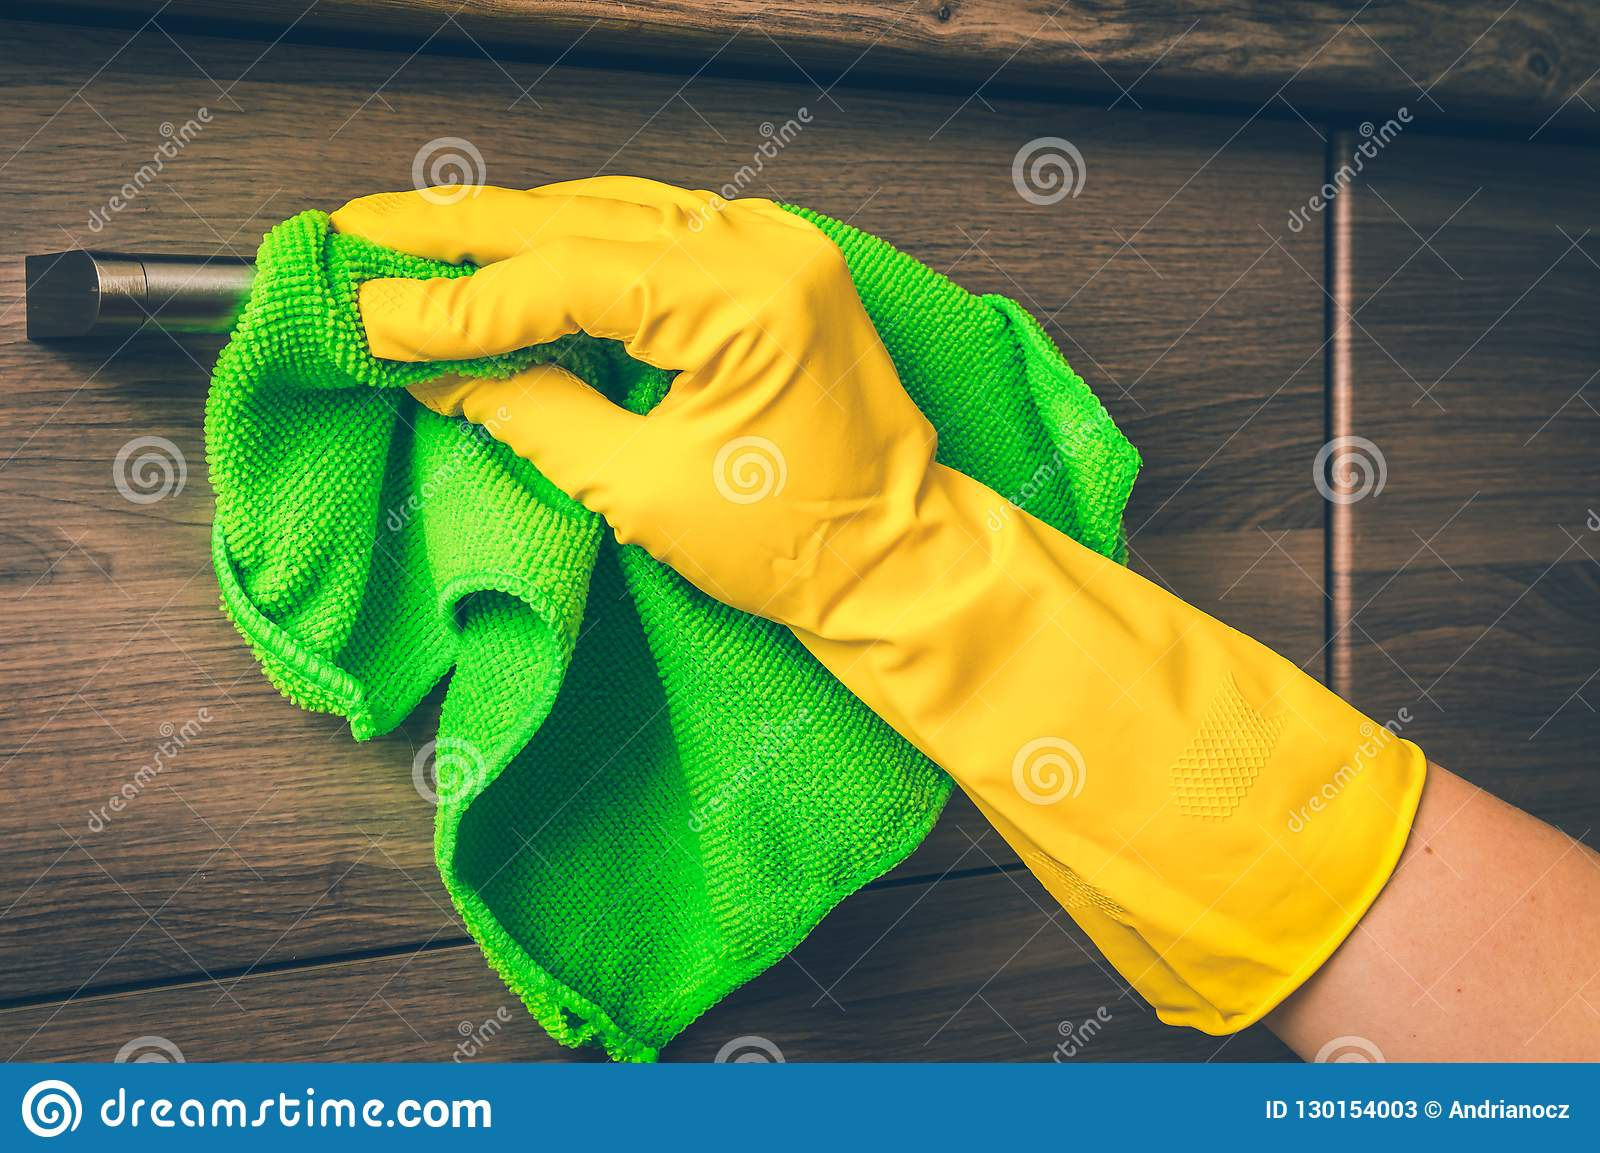 4917a8897c81a Hand in glove with green rag is cleaning stainless steel handles -  housework and housekeeping concept - retro style